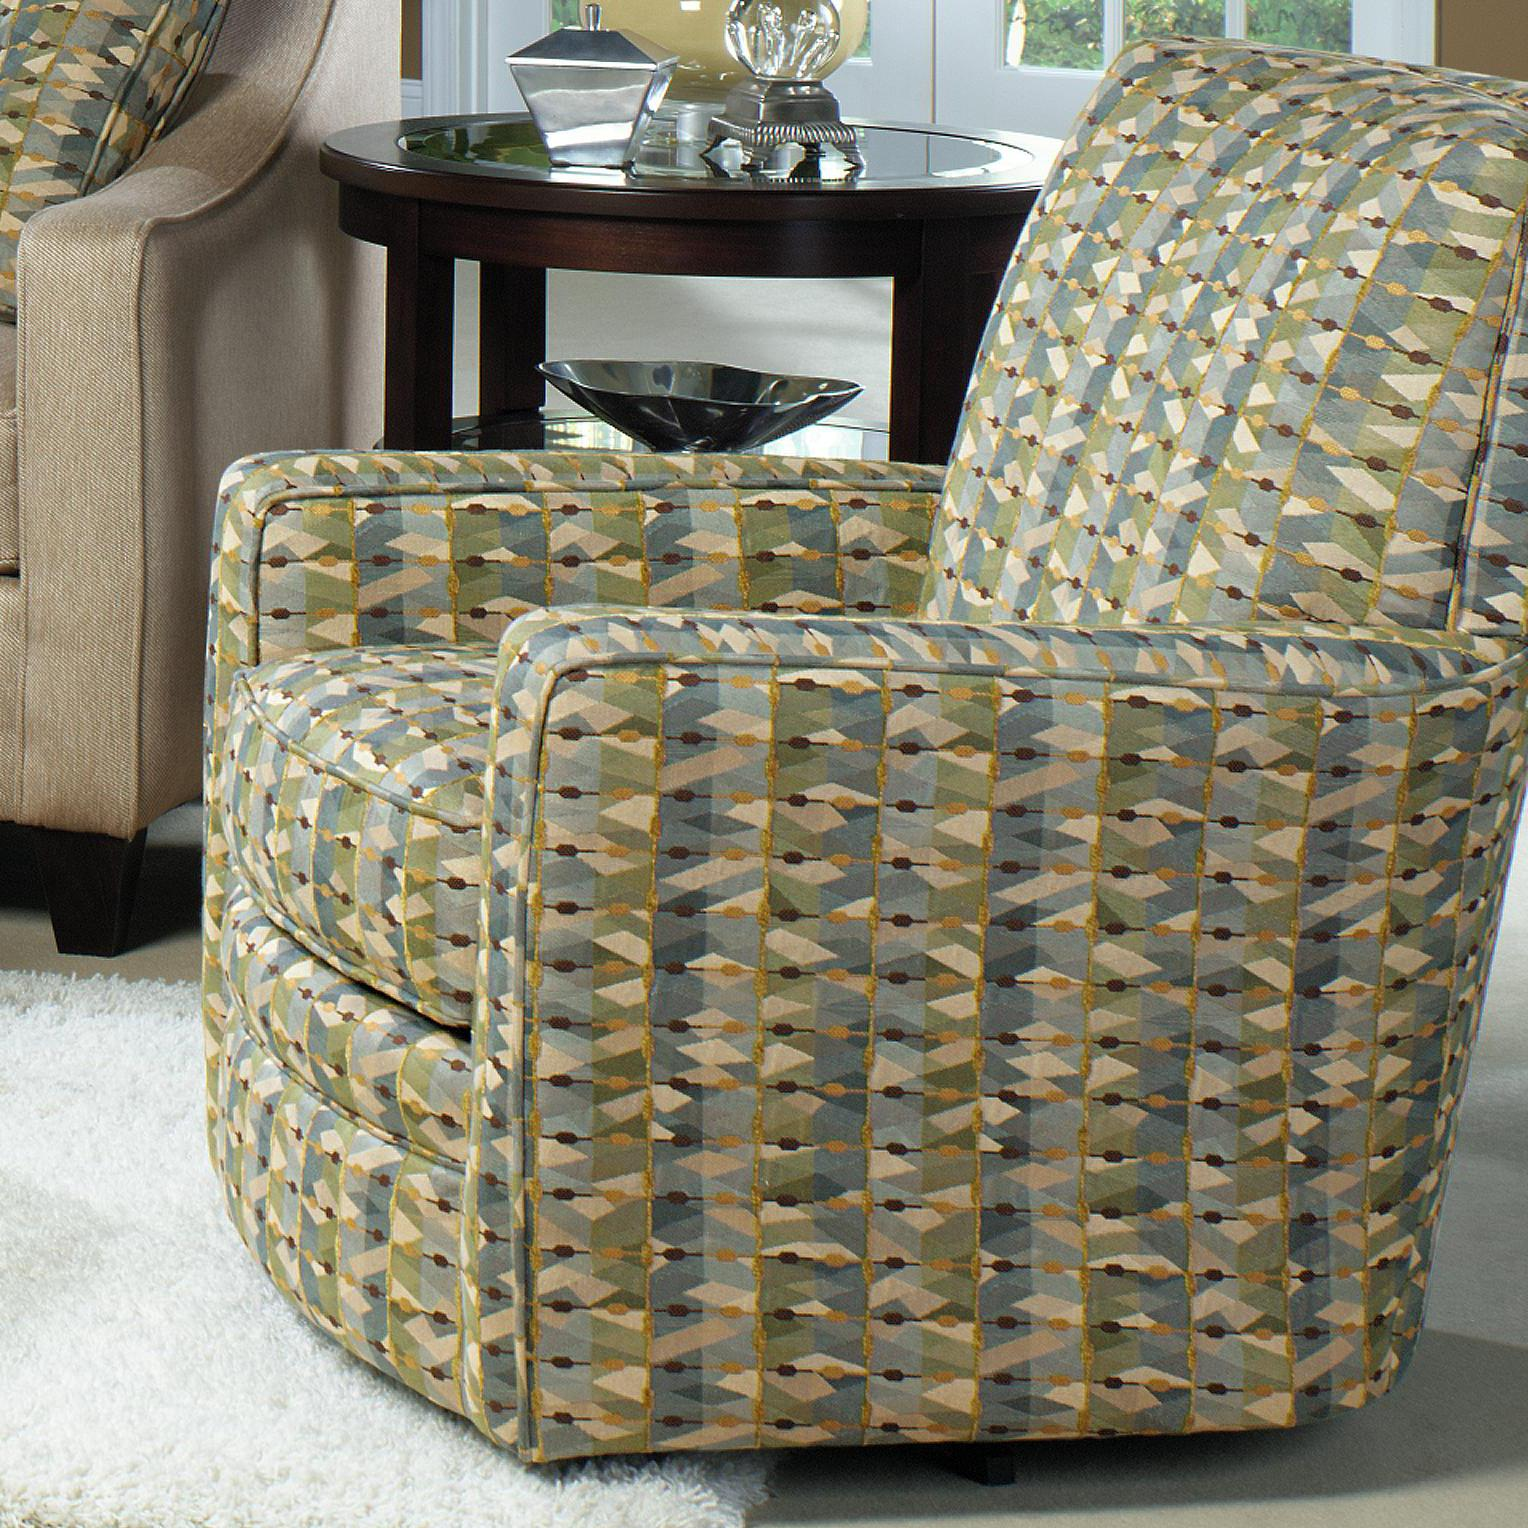 Upholstered Swivel Chairs Craftmaster Swivel Chairs Contemporary Upholstered Swivel Glider